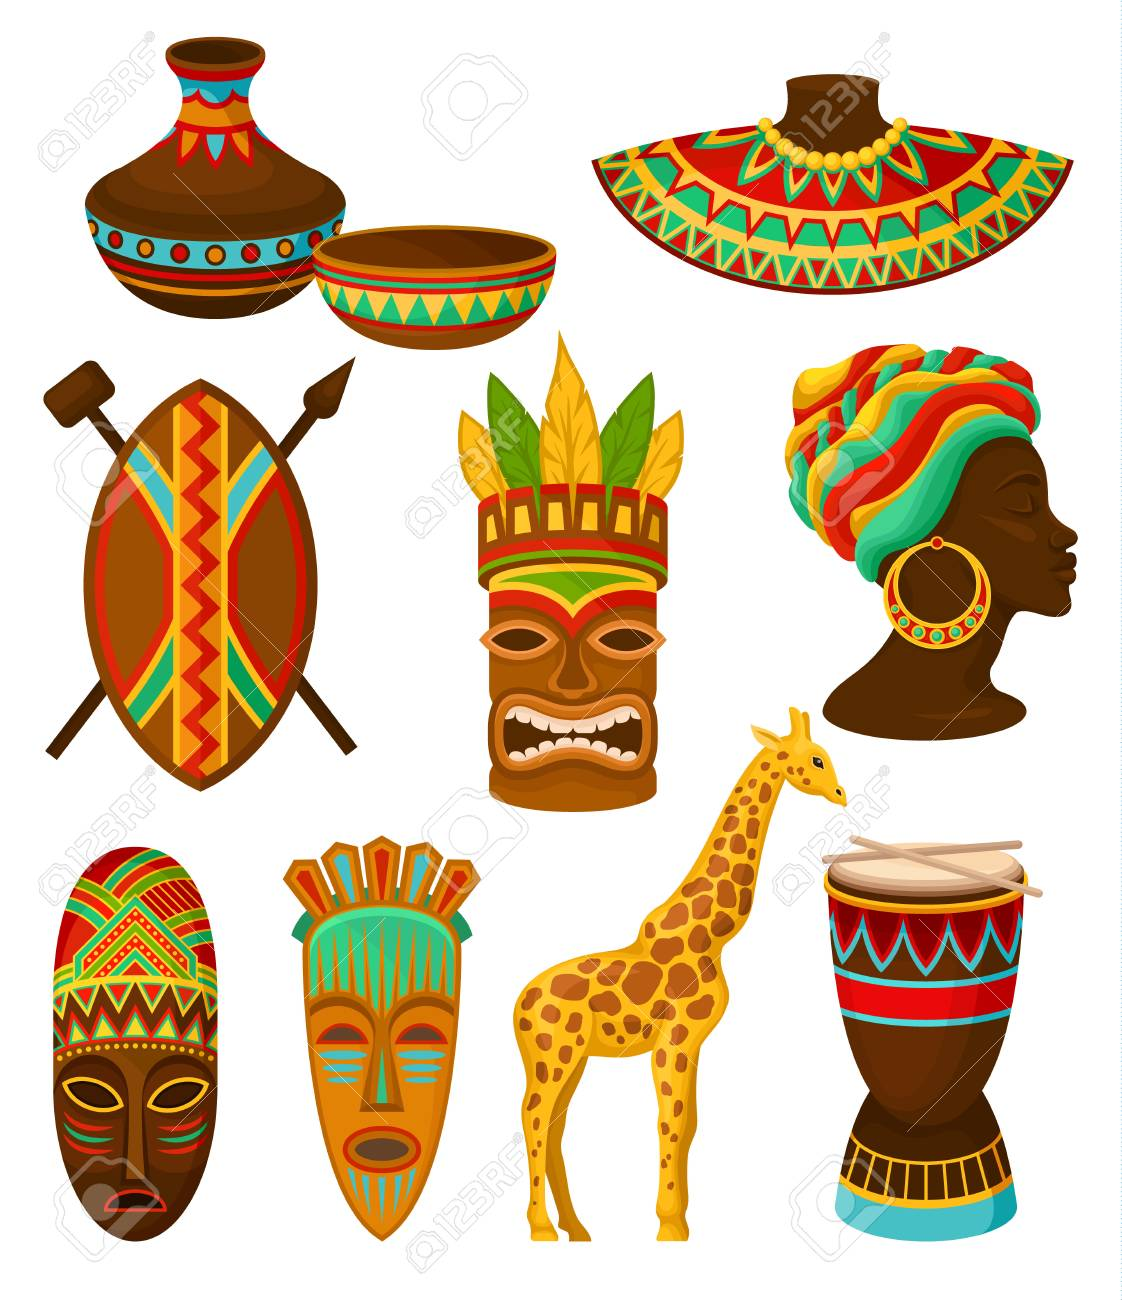 Collection of authentic symbols of Africa, crockery, weapon, mask, drum with traditional ethnic ornament vector Illustrations isolated on a white background. - 106736494